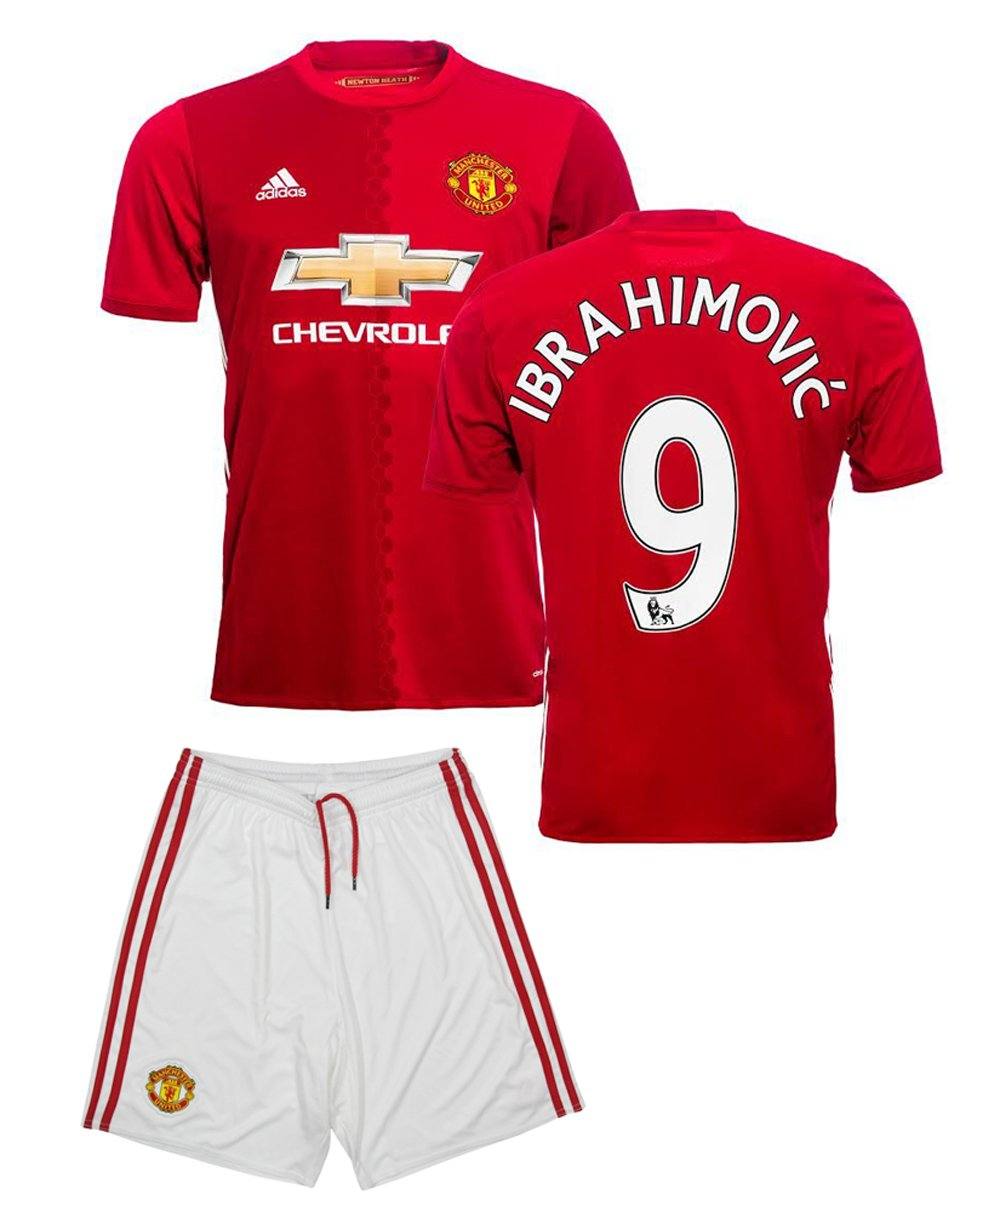 new product 471bc 47bd5 Amazon.com: 2016-17 MANCHESTER UNITED HOME ZLATAN ...